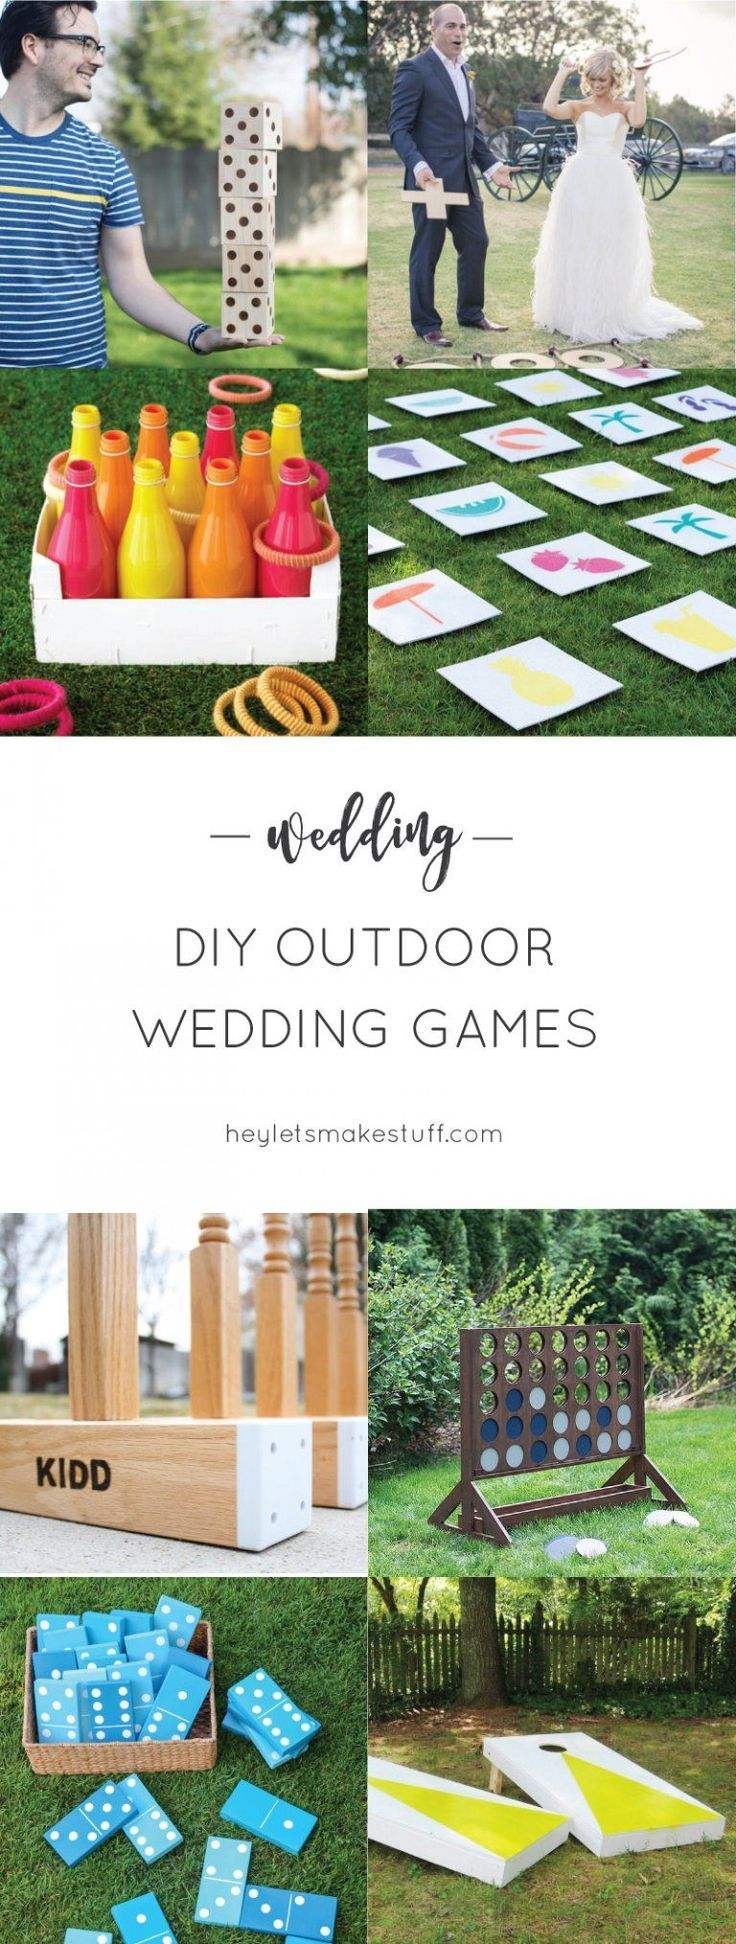 If you're having an outdoor wedding, lawn games are a fun way to